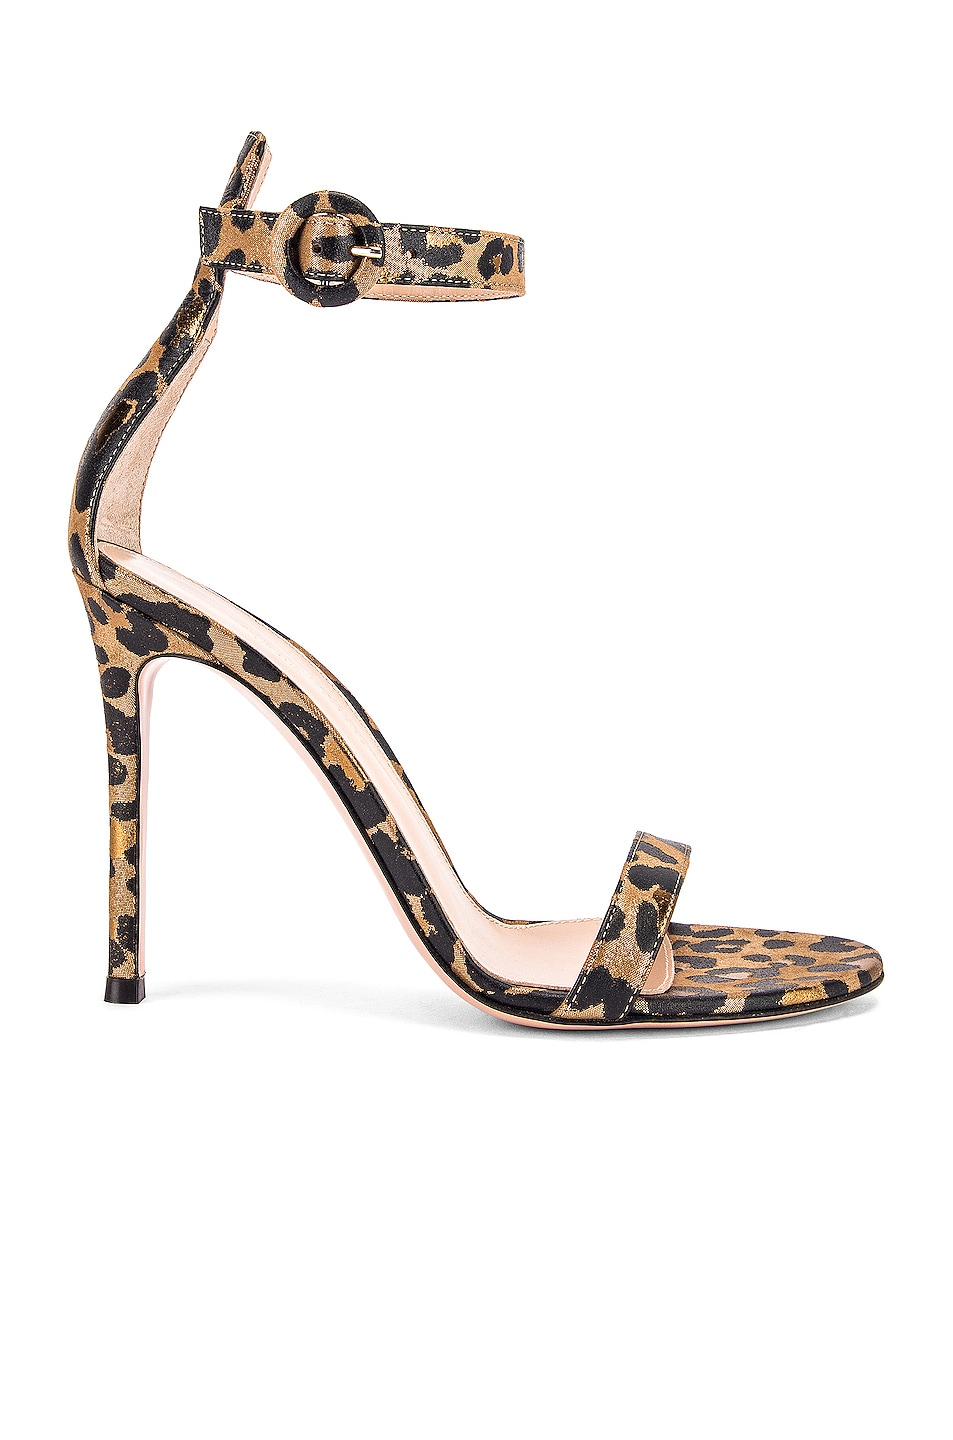 Image 1 of Gianvito Rossi Leopard Ankle Strap Heels in Gold Leopard